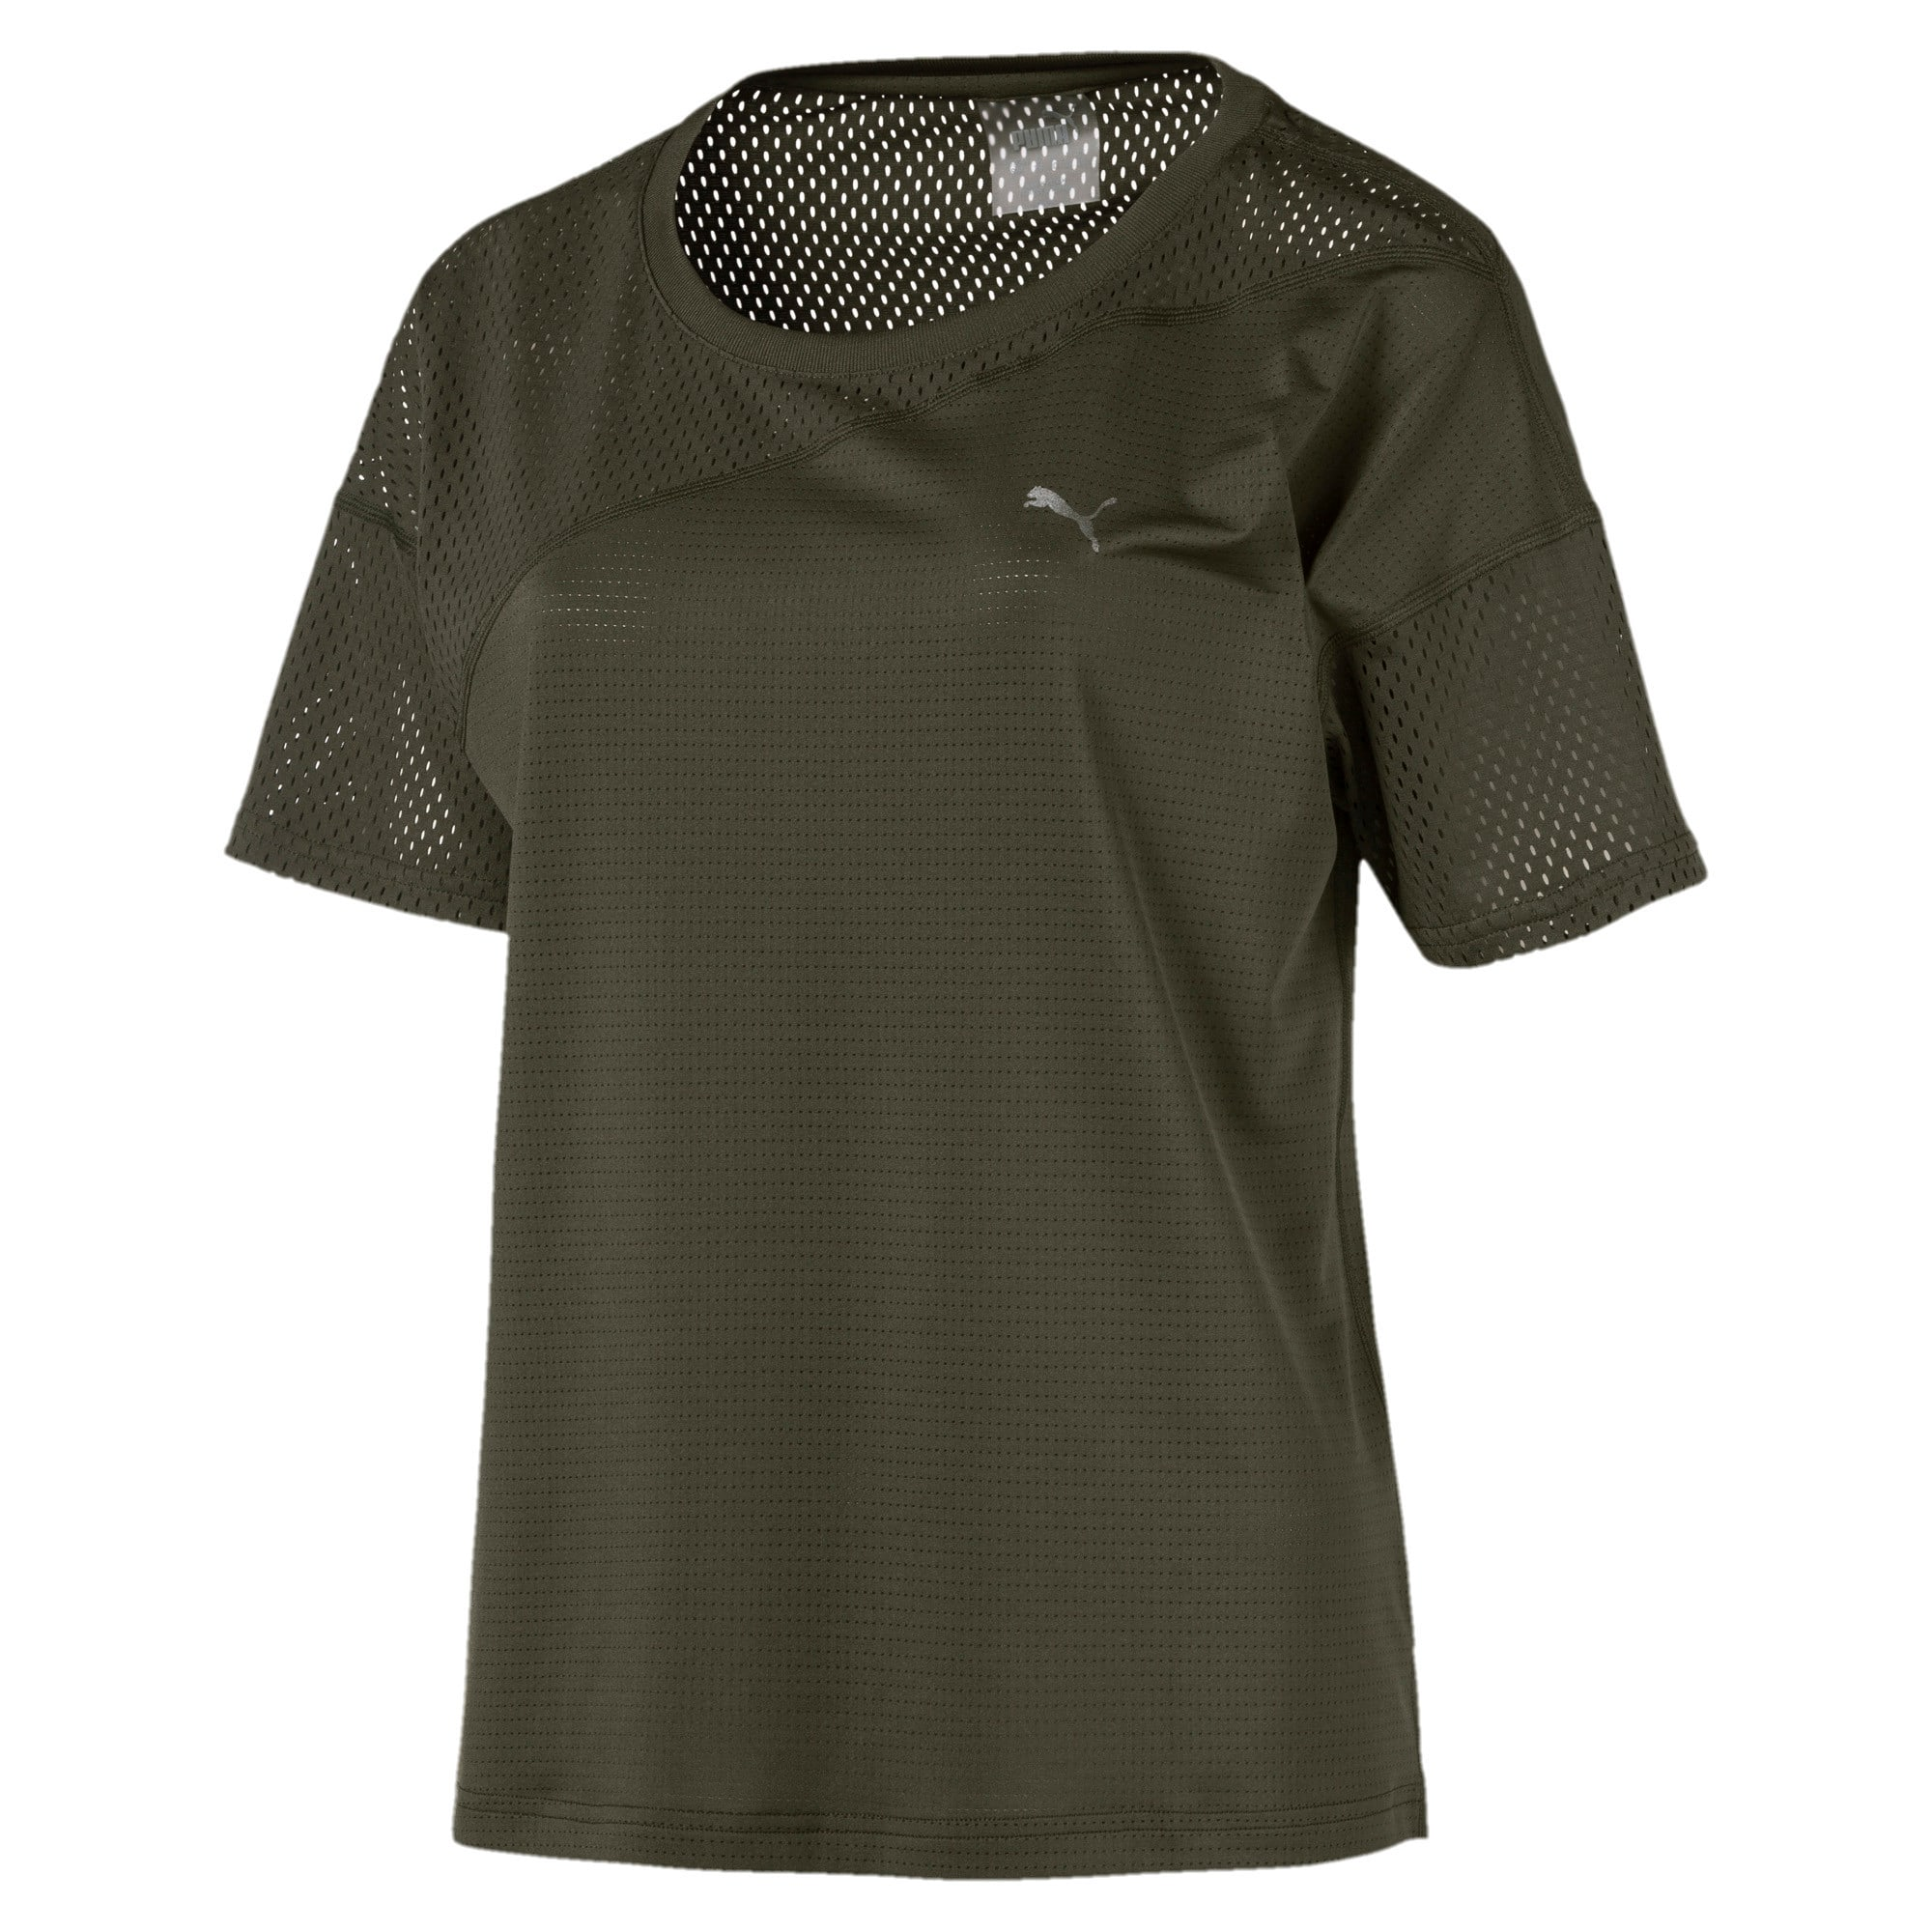 Thumbnail 4 of A.C.E. Mesh Blocked Women's Training Top, Forest Night, medium-IND